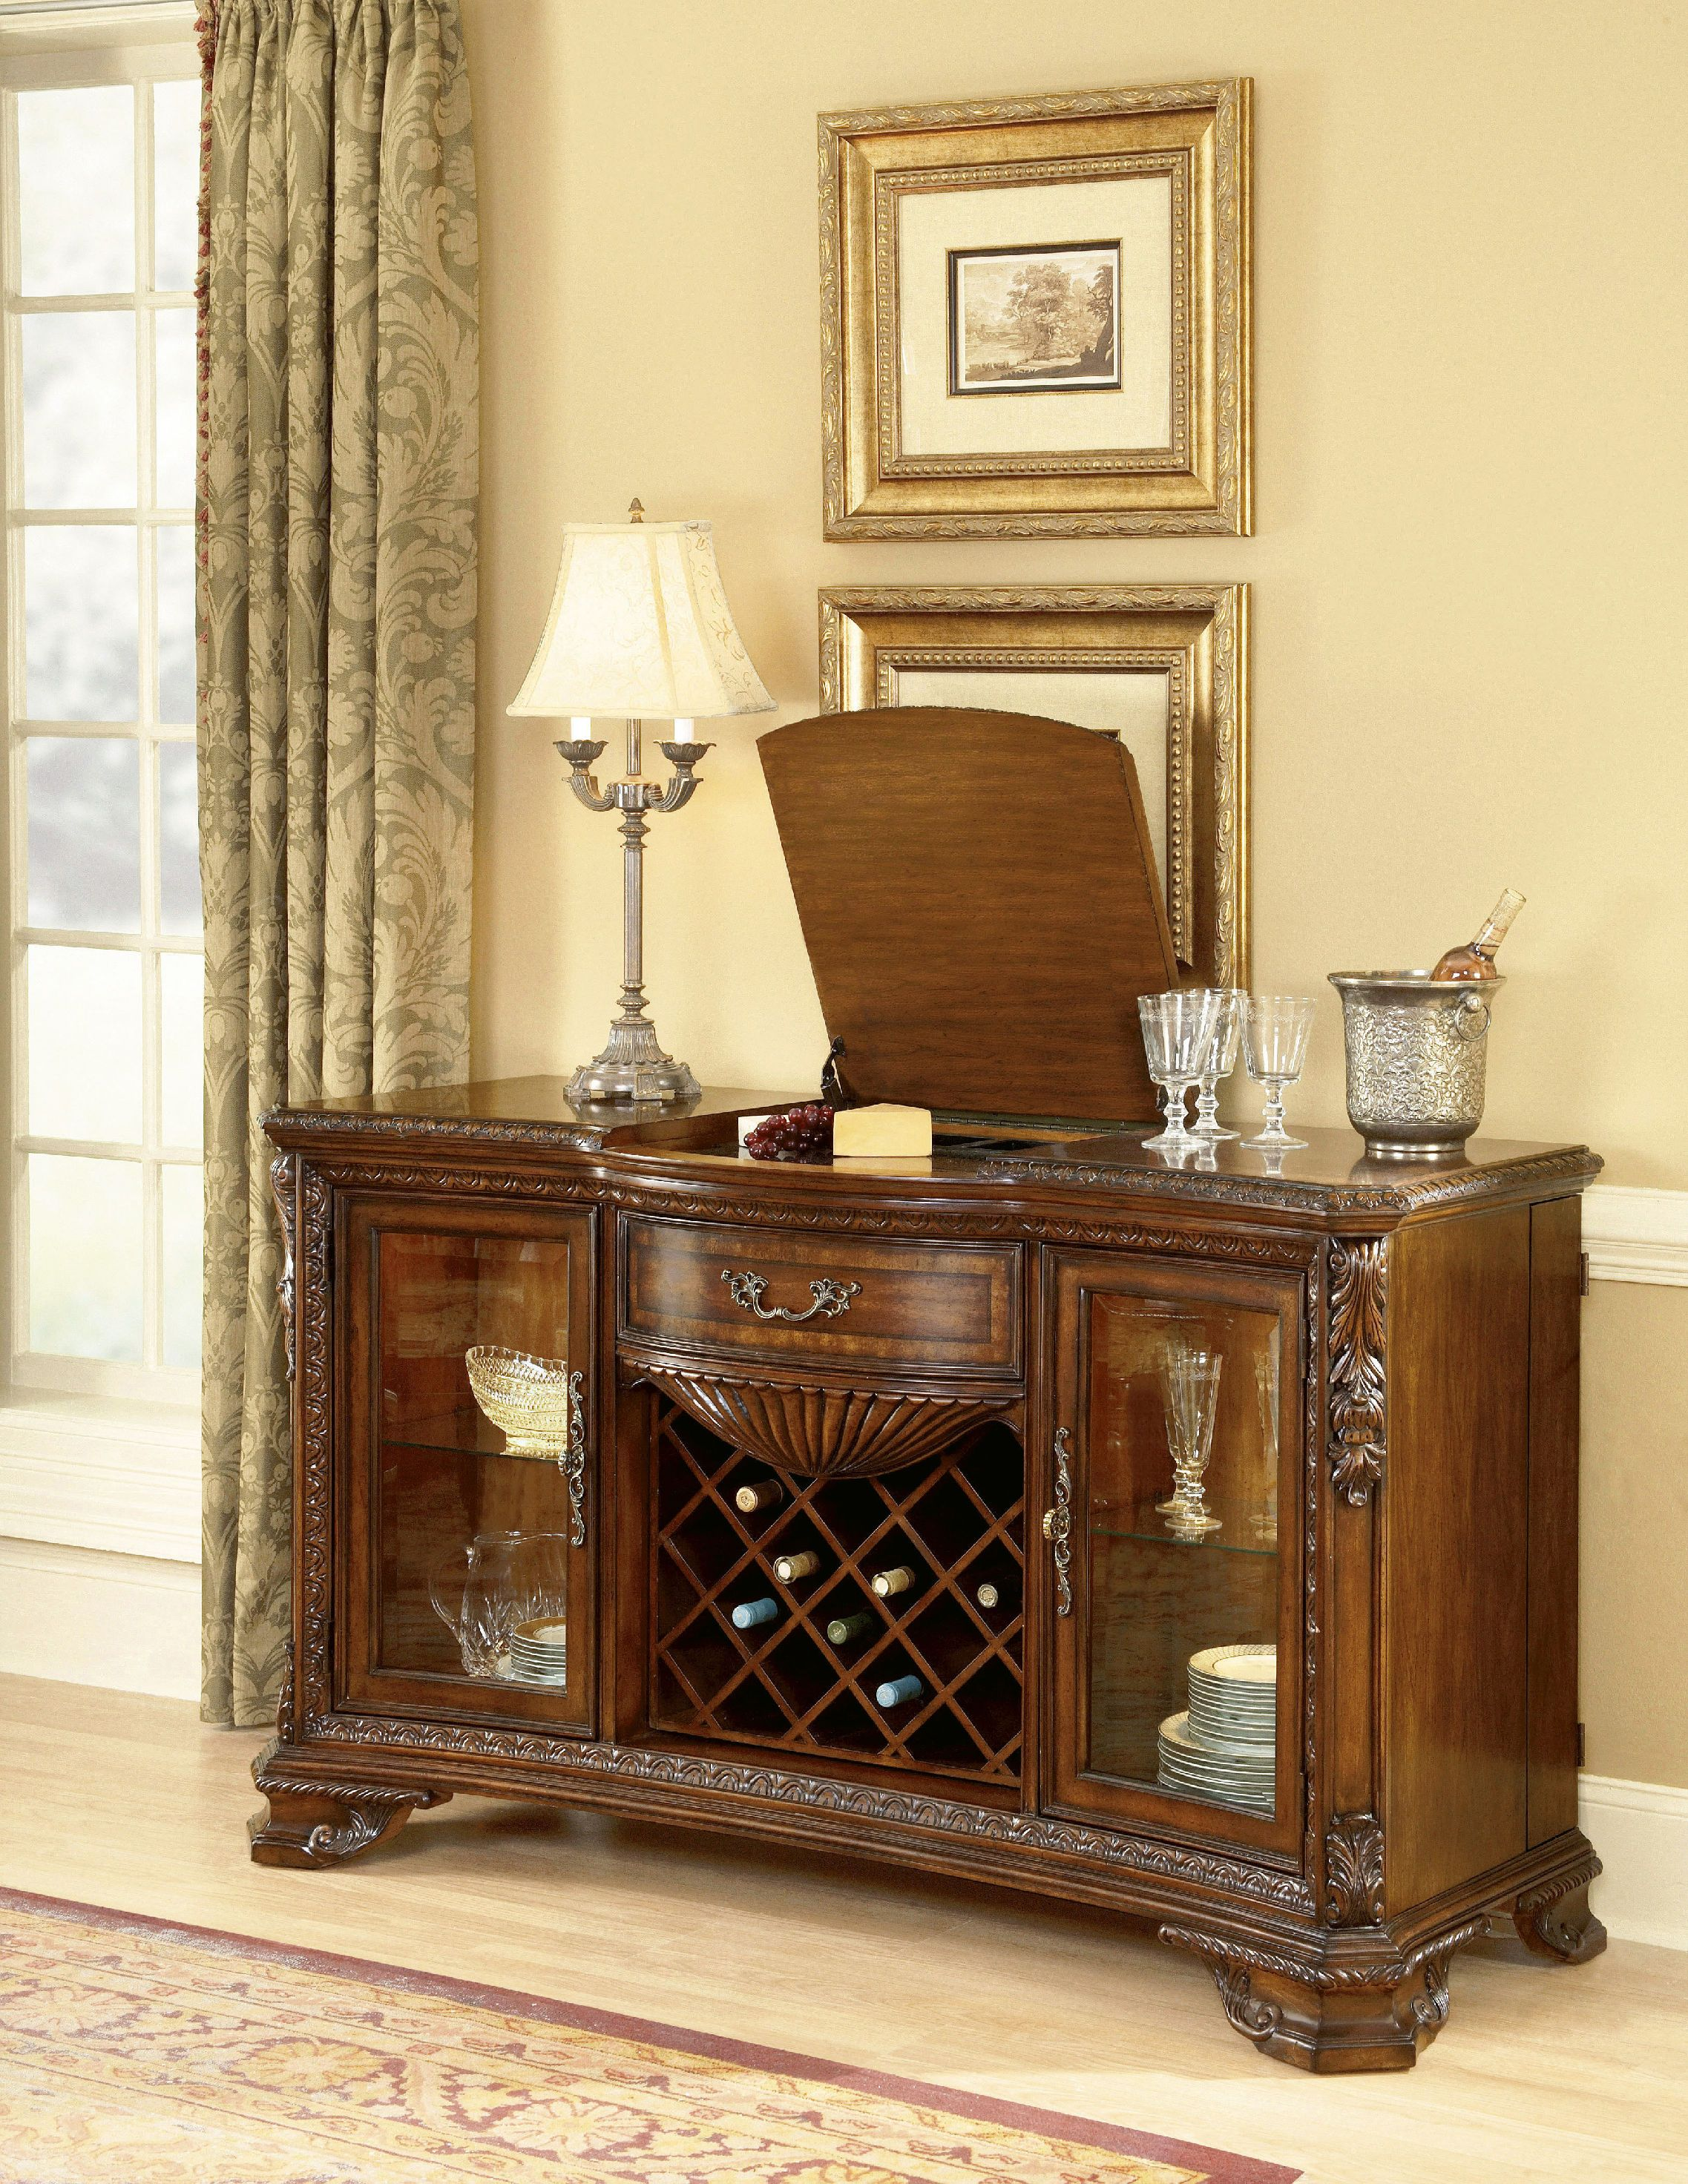 ART Furniture Dining Room Wine And Cheese Buffet 143252 2606   The Village  Shoppe